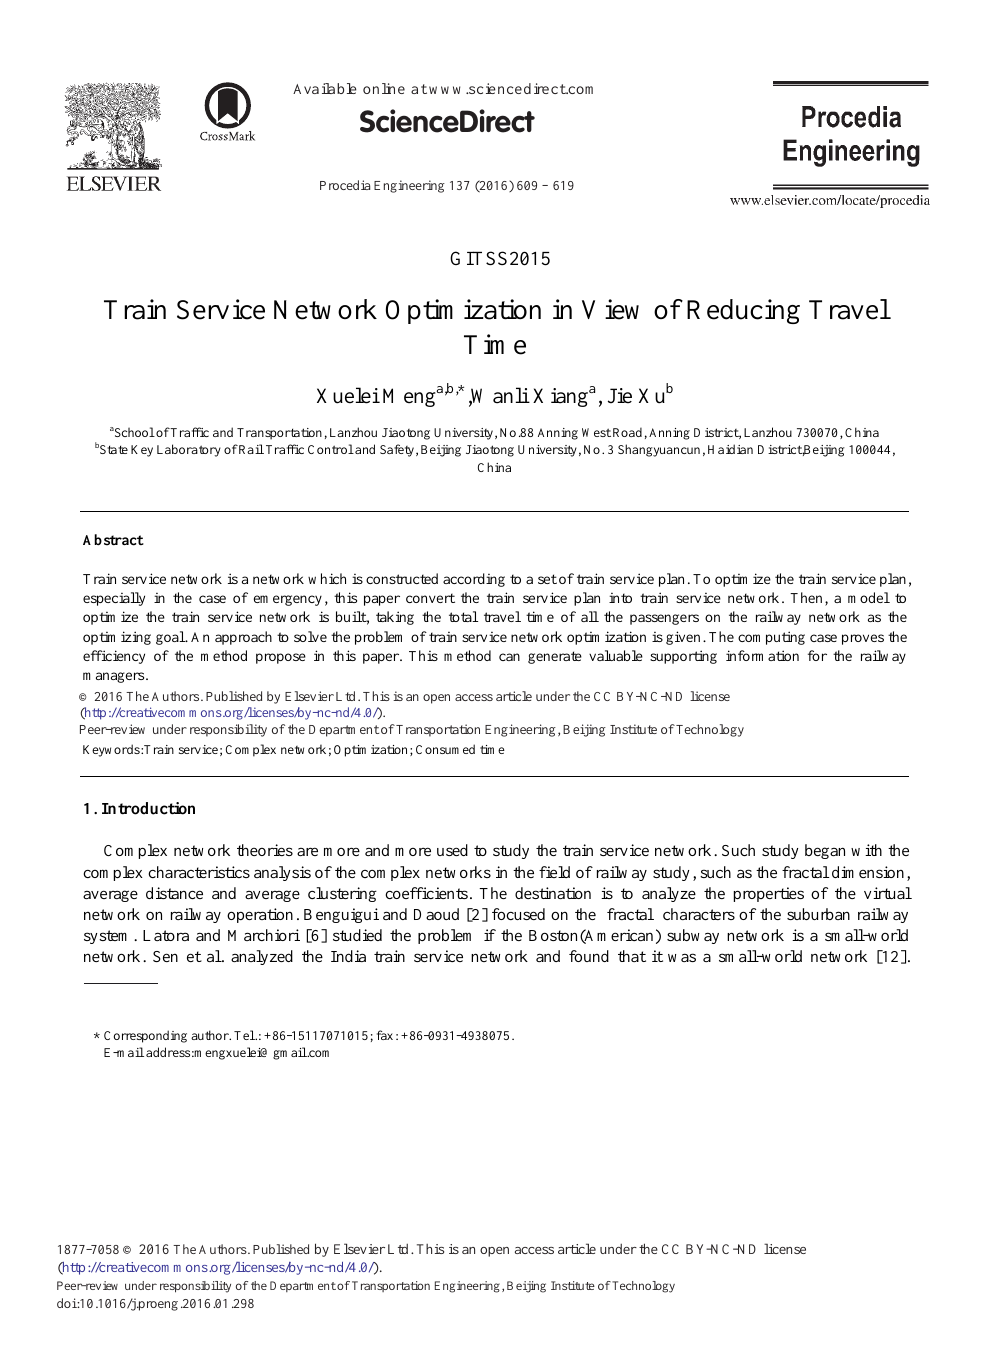 Train Service Network Optimization in View of Reducing